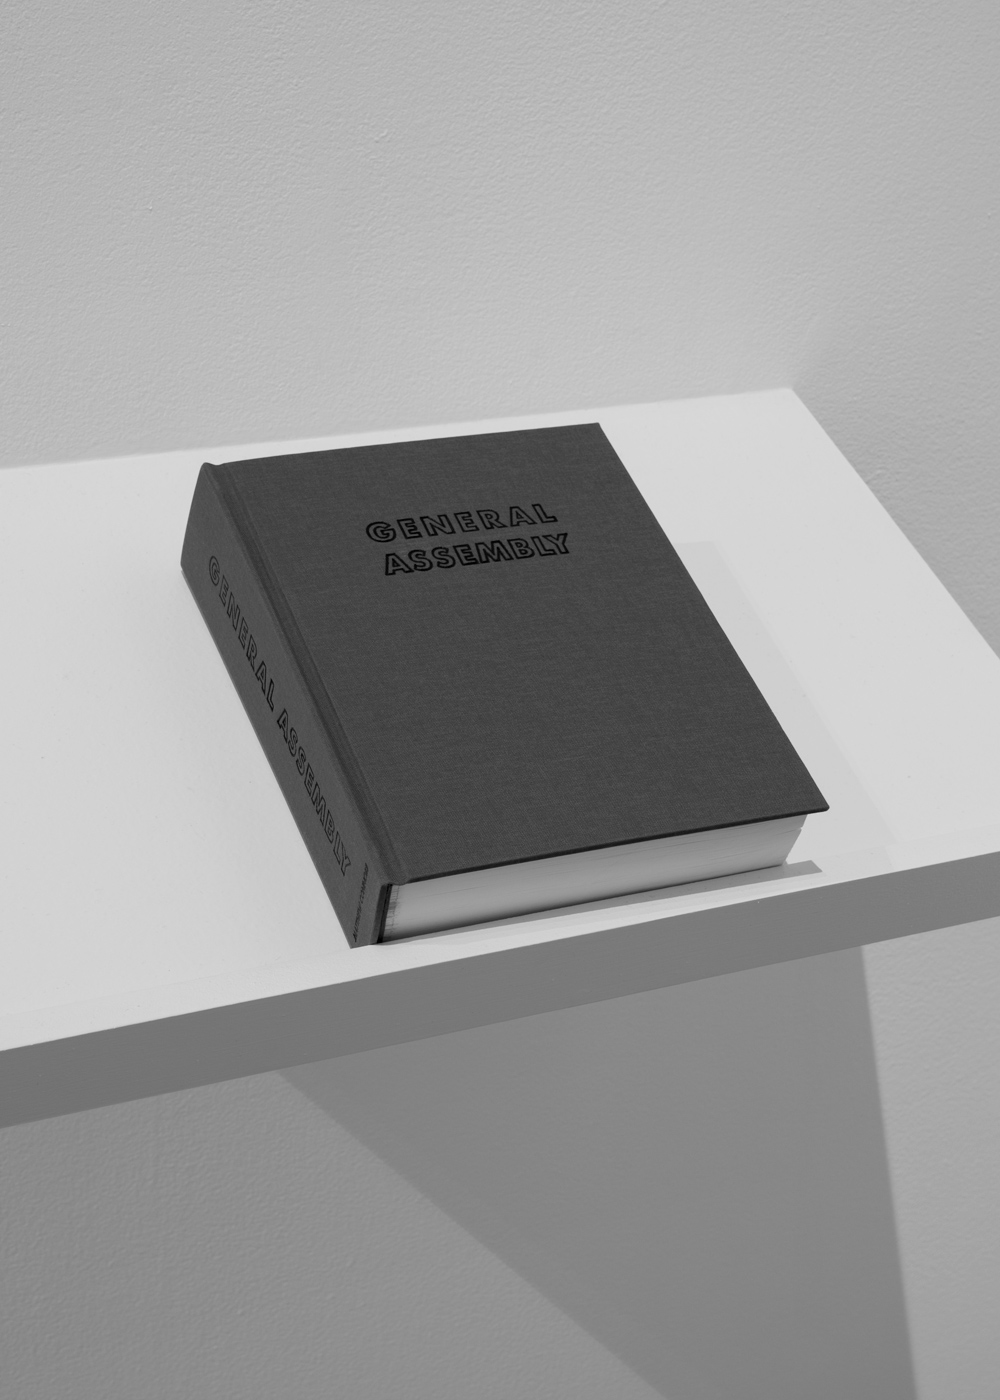 General Assembly Photographs and text by Matthew Connors 665 pages Inkjet prints Hardcover, bound by hand, 7.75 x 9.75 inches